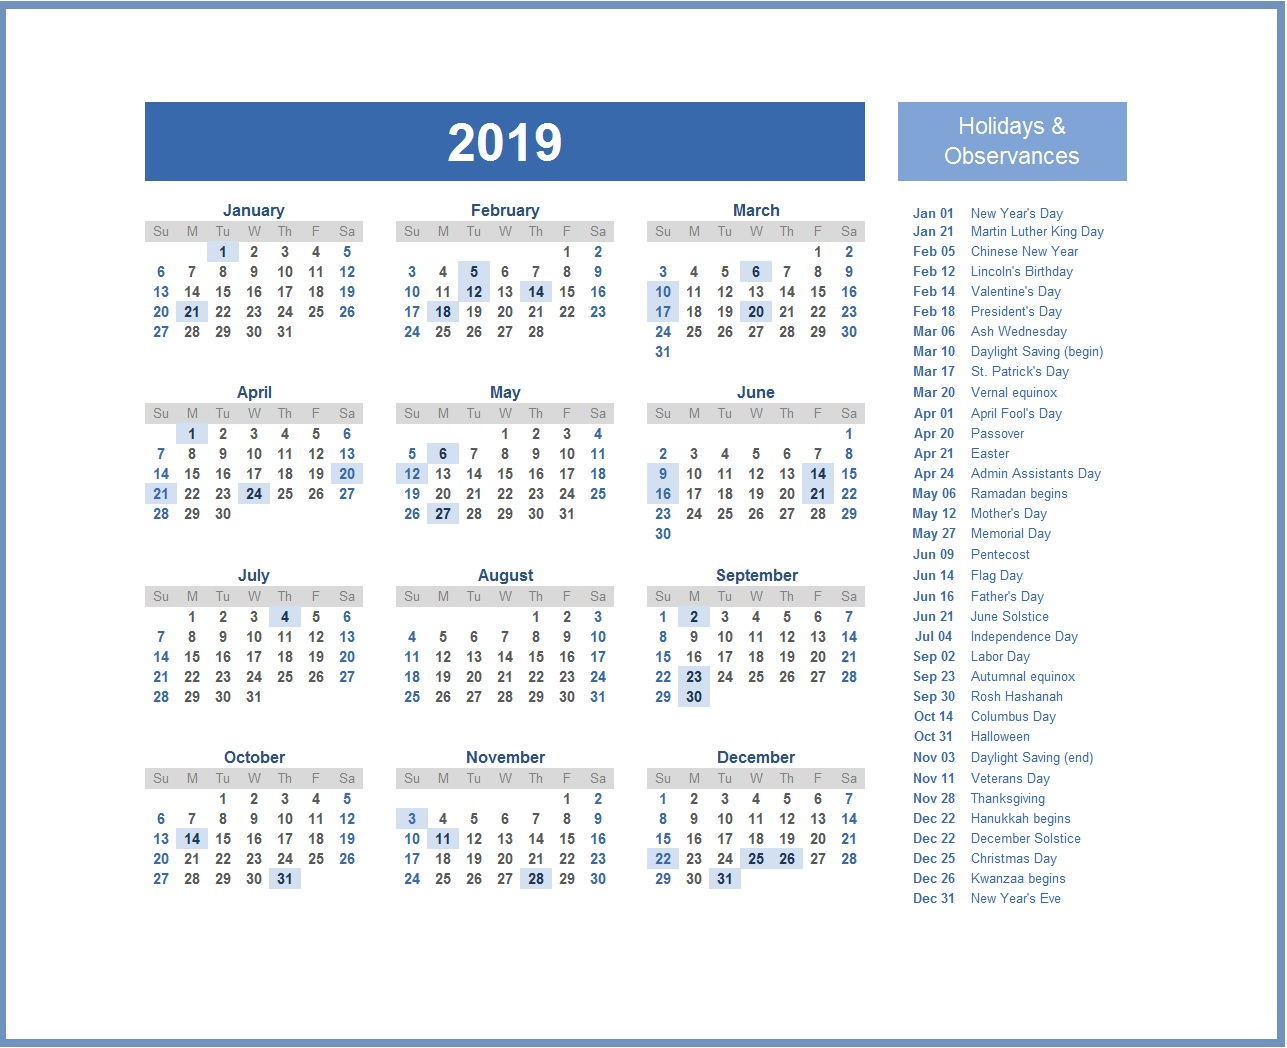 2019 Calendar with USA Holidays